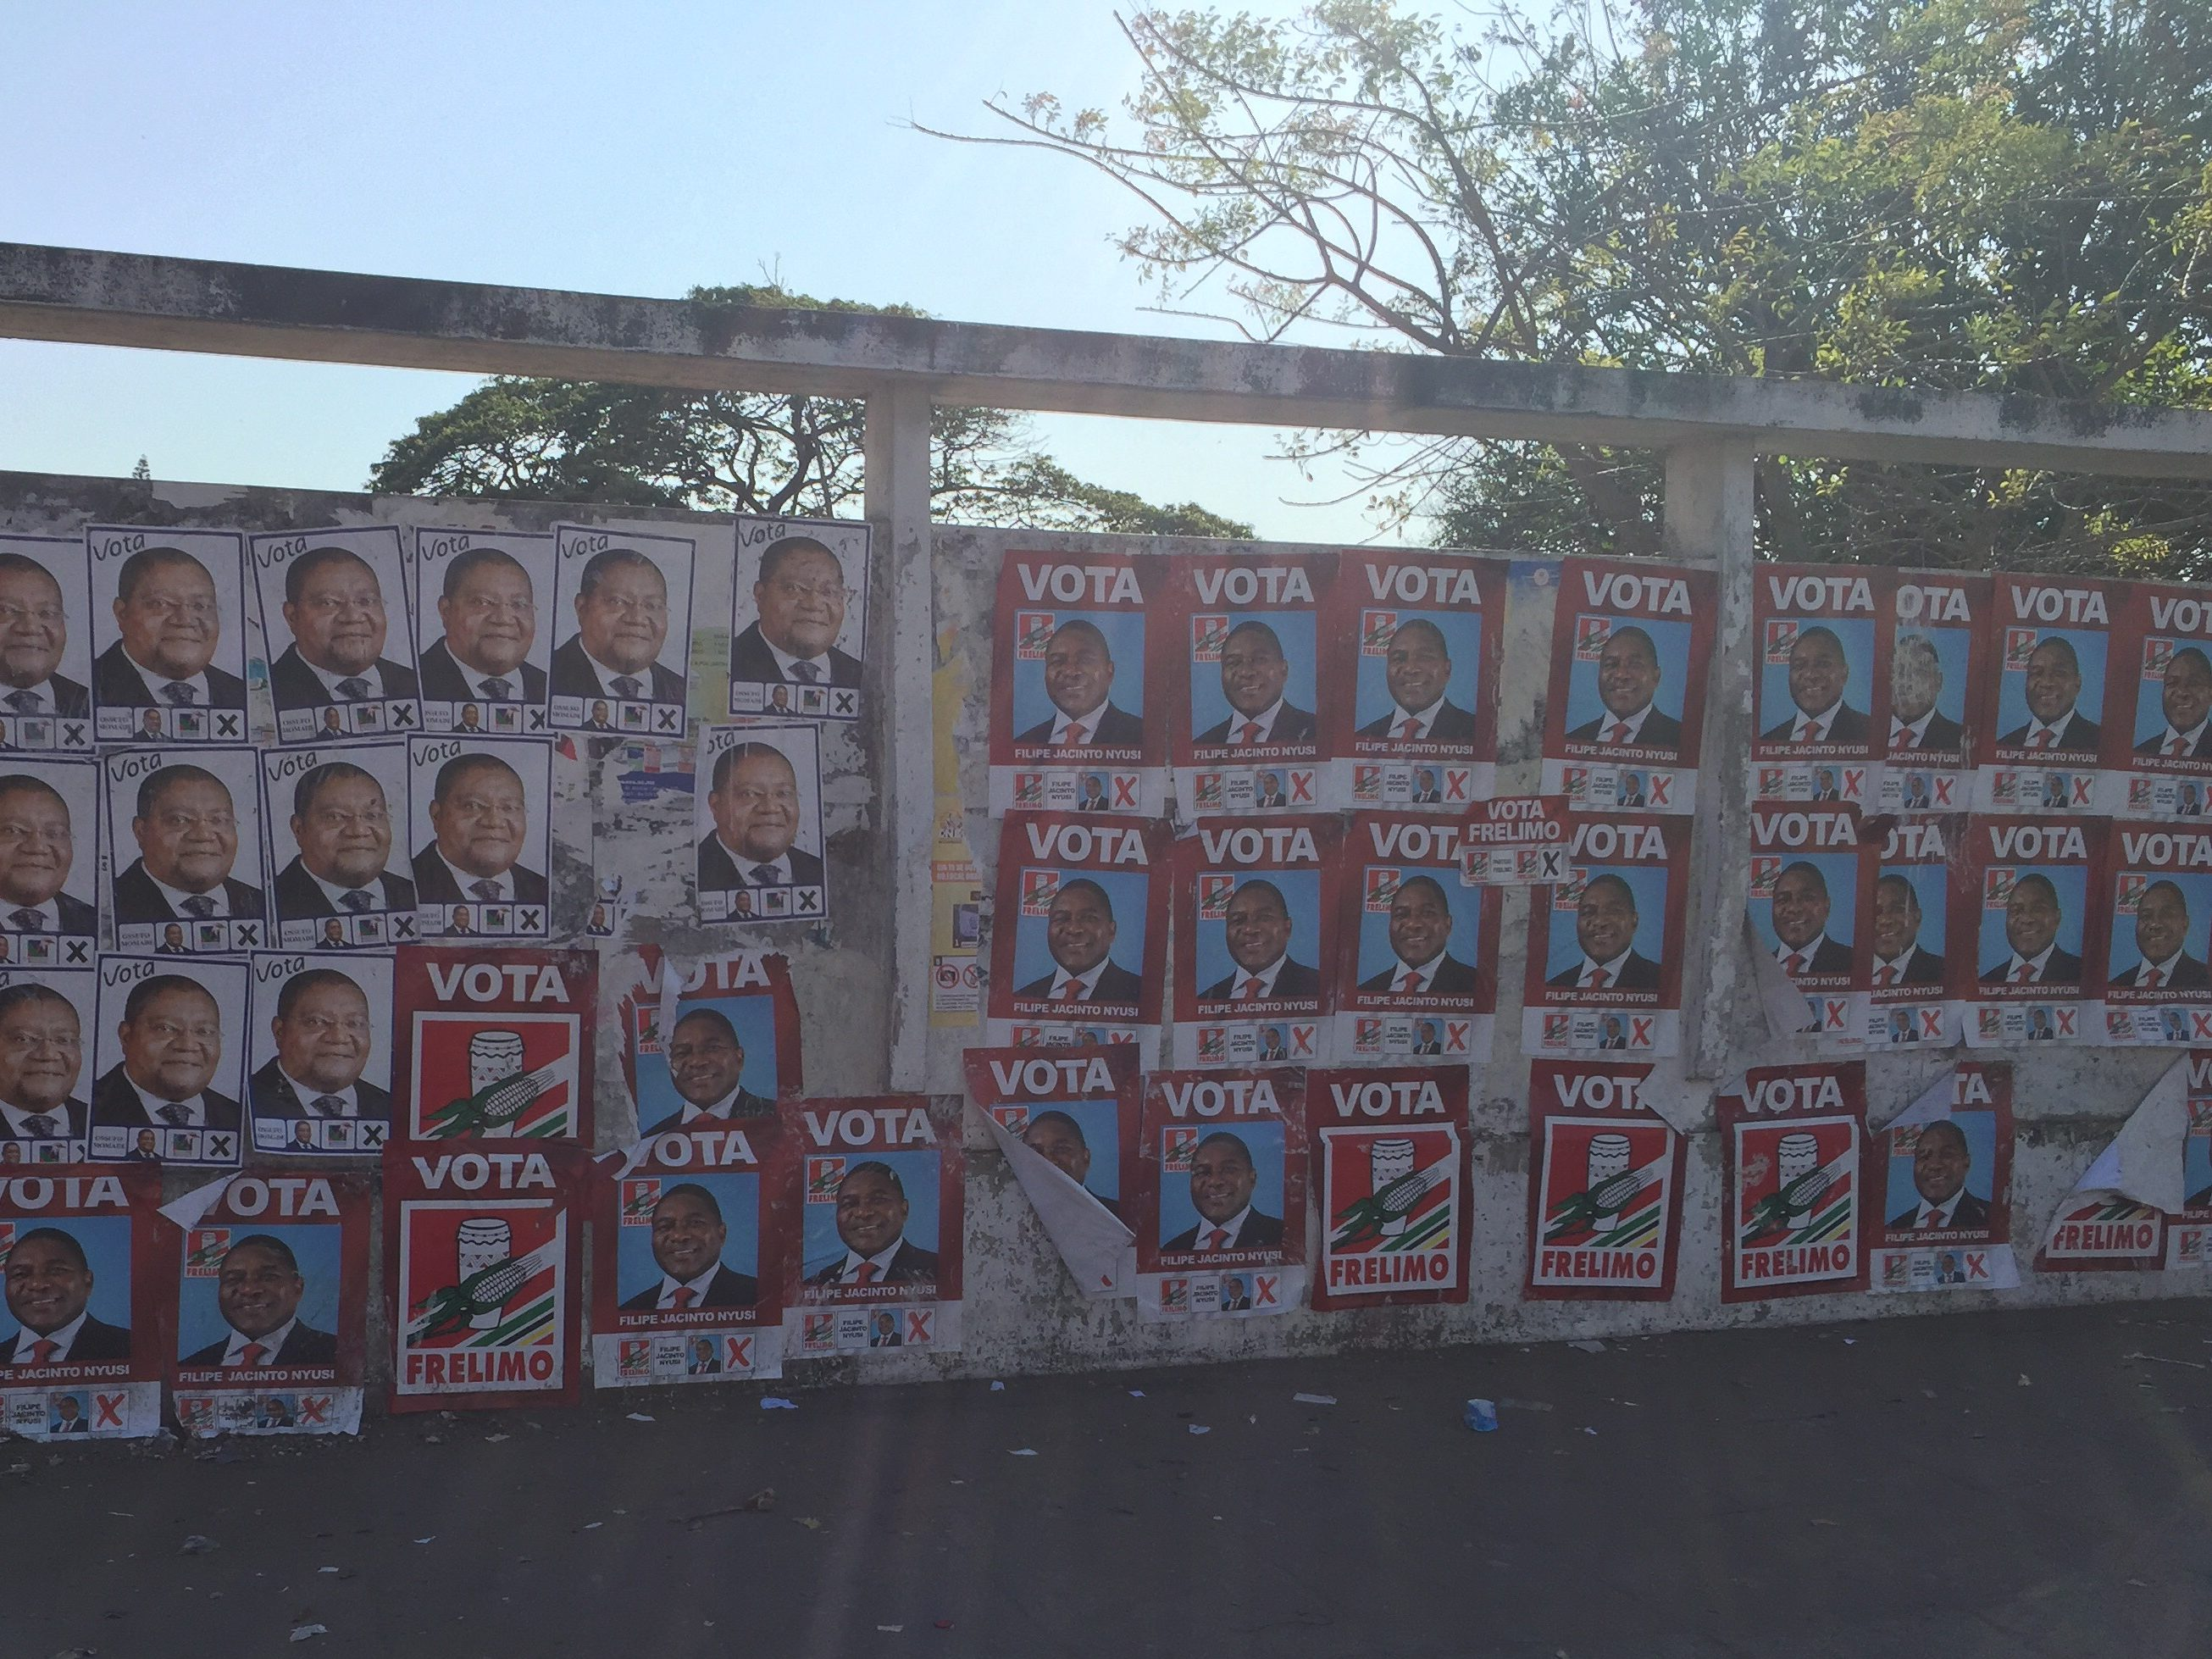 Mozambican journalists and activists targeted with threats in election year